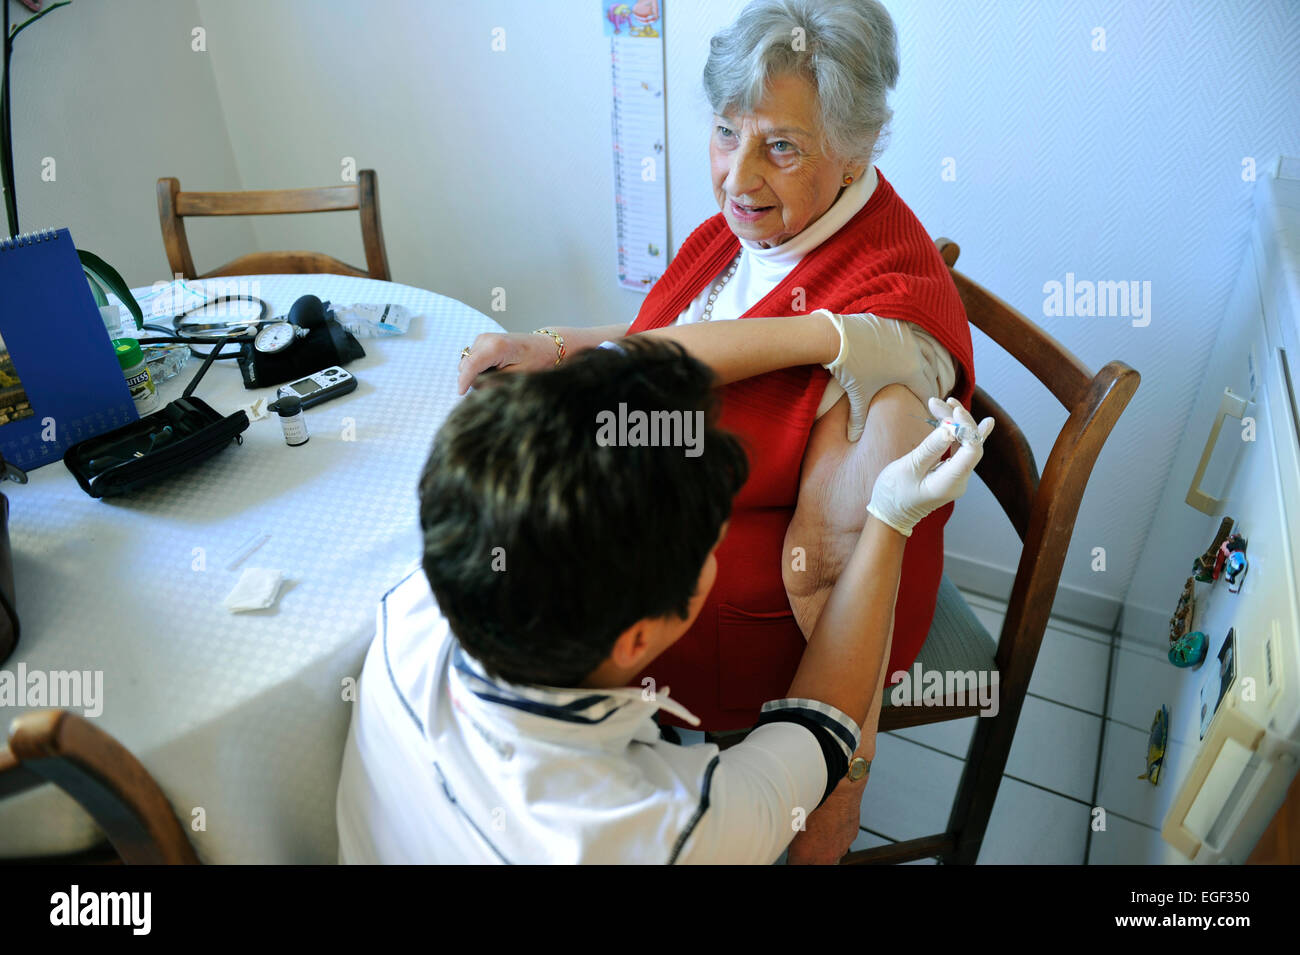 The elderly and sick visit to the doctor's assistant relieves the practice owner of routine tasks such as taking Stock Photo